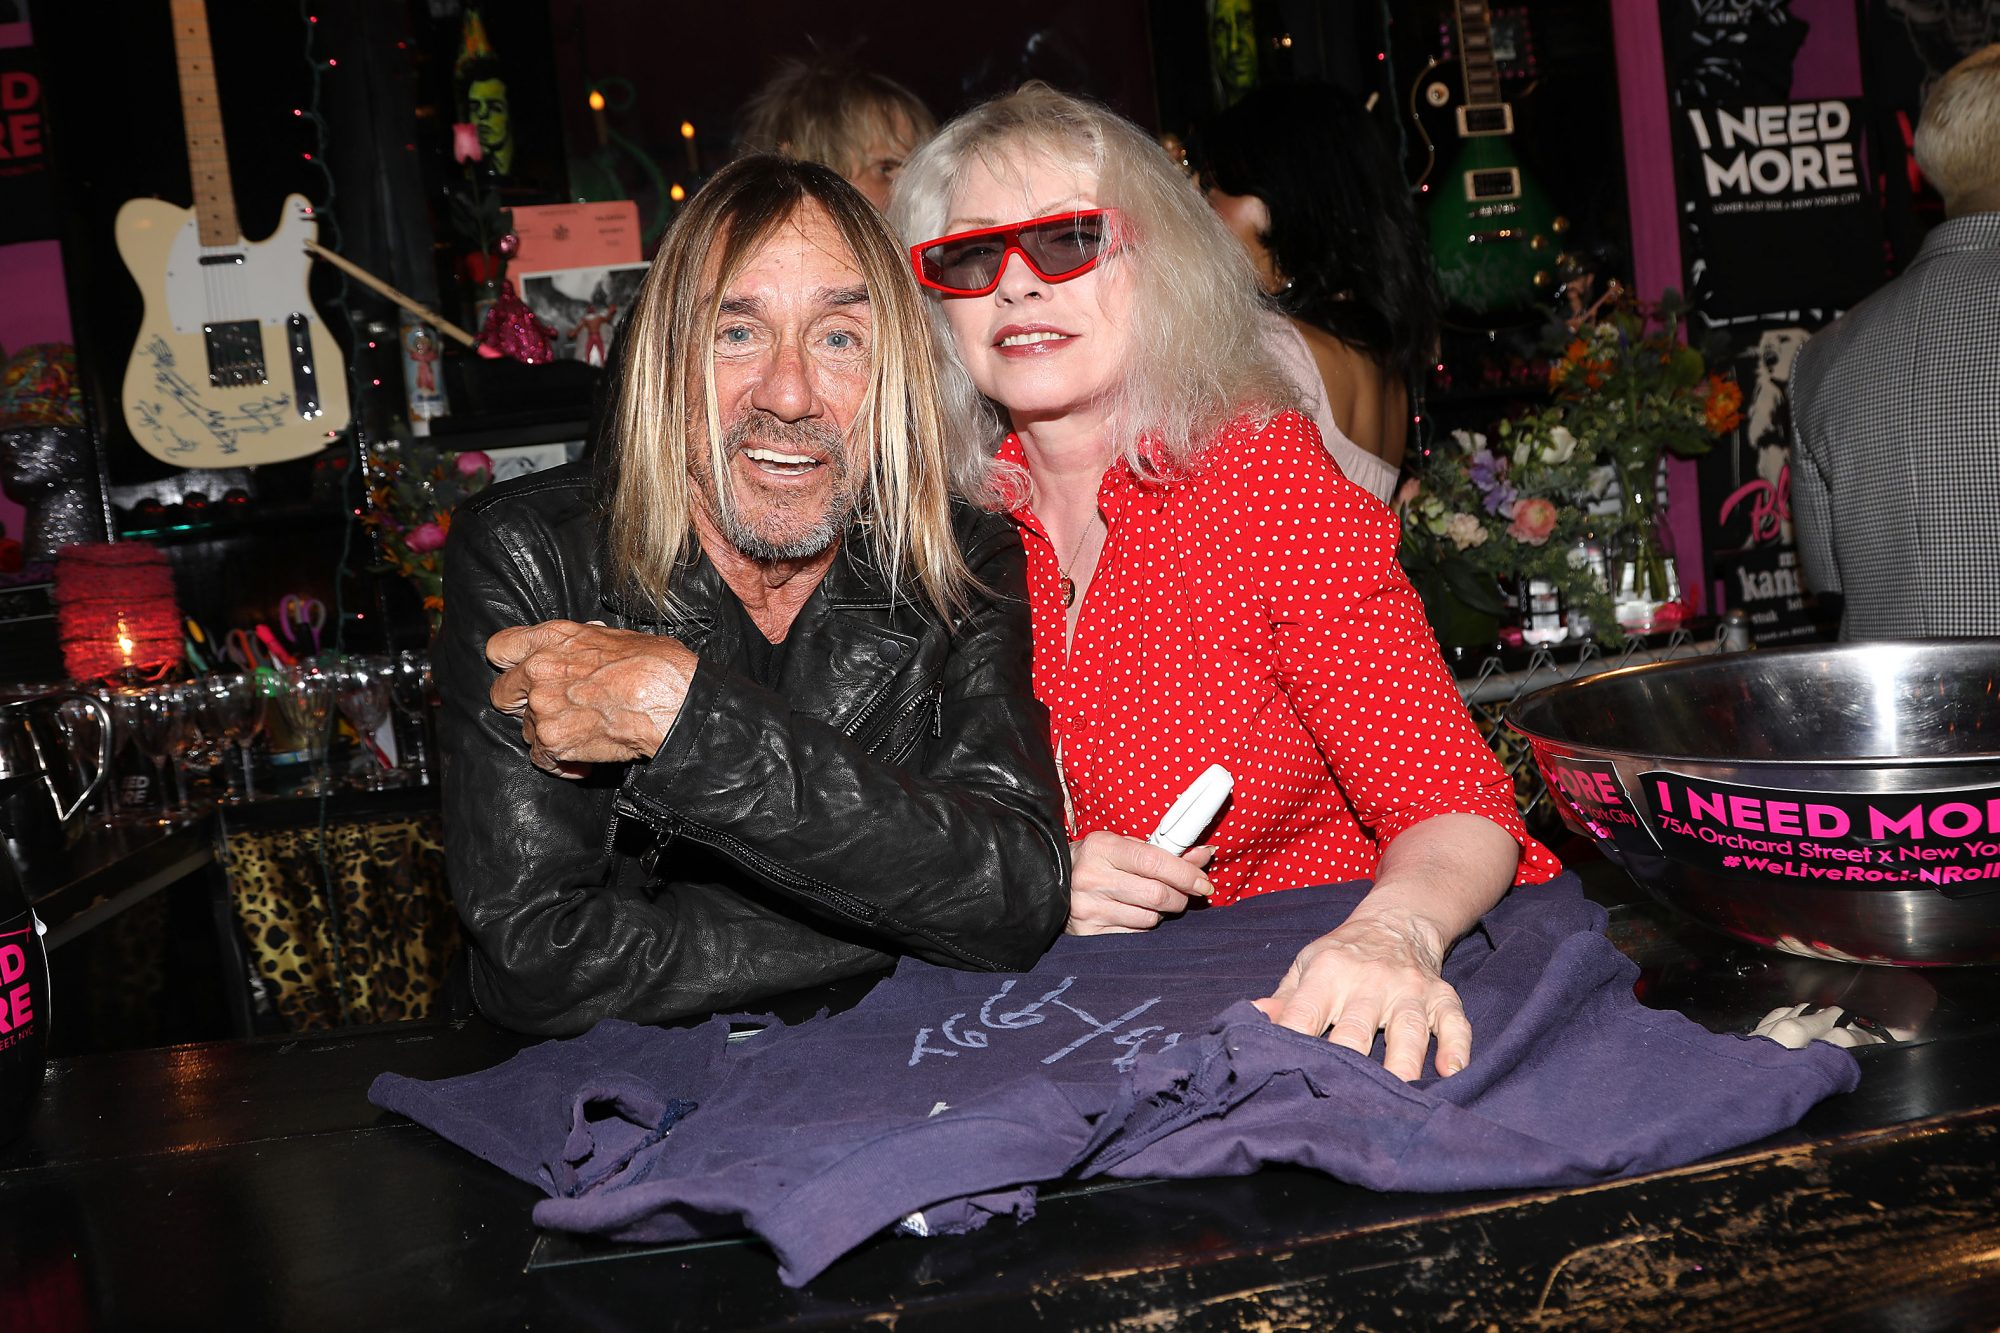 I NEED MORE Presents - 'Footprints in February' with Iggy Pop and Debbie Harry, New York, USA - 24 Feb 2020